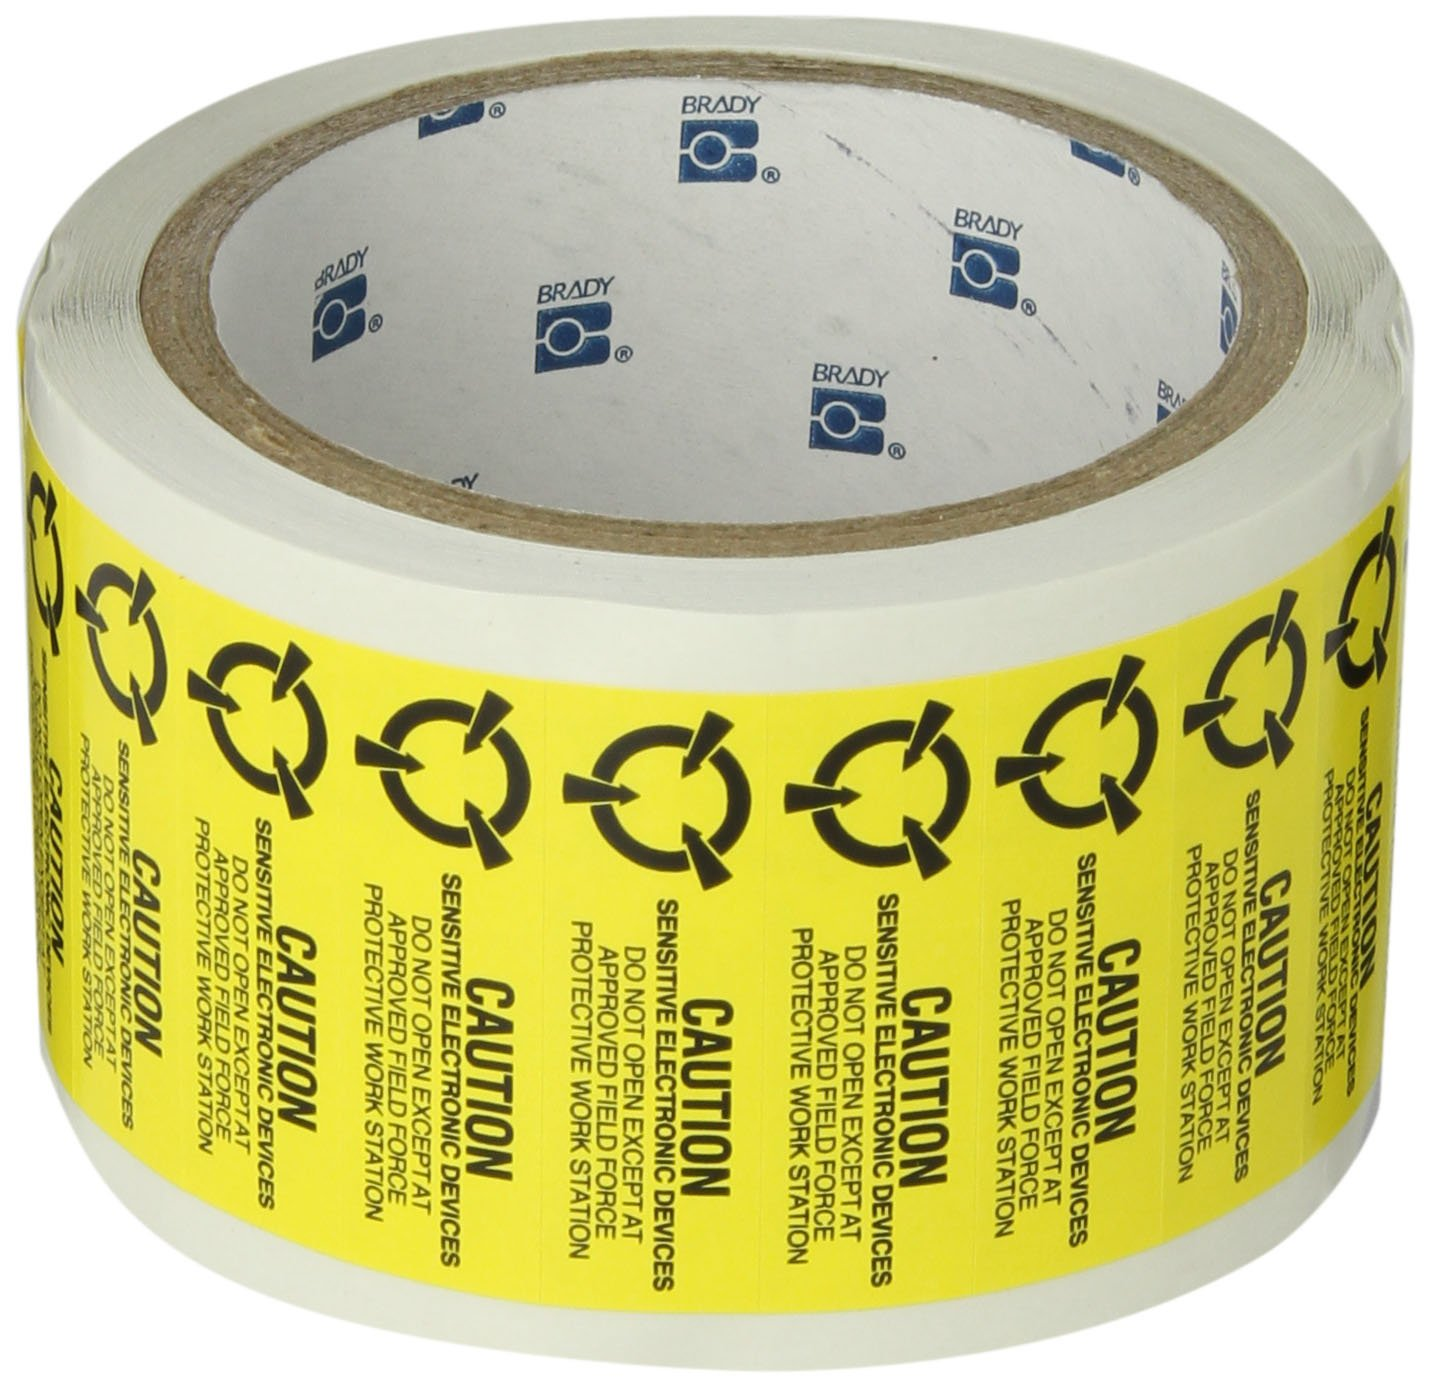 1000 per Roll Black on Yellow Static Awareness Label Brady SL-8 2 Width x 0.625 Height B-122 Removable Paper